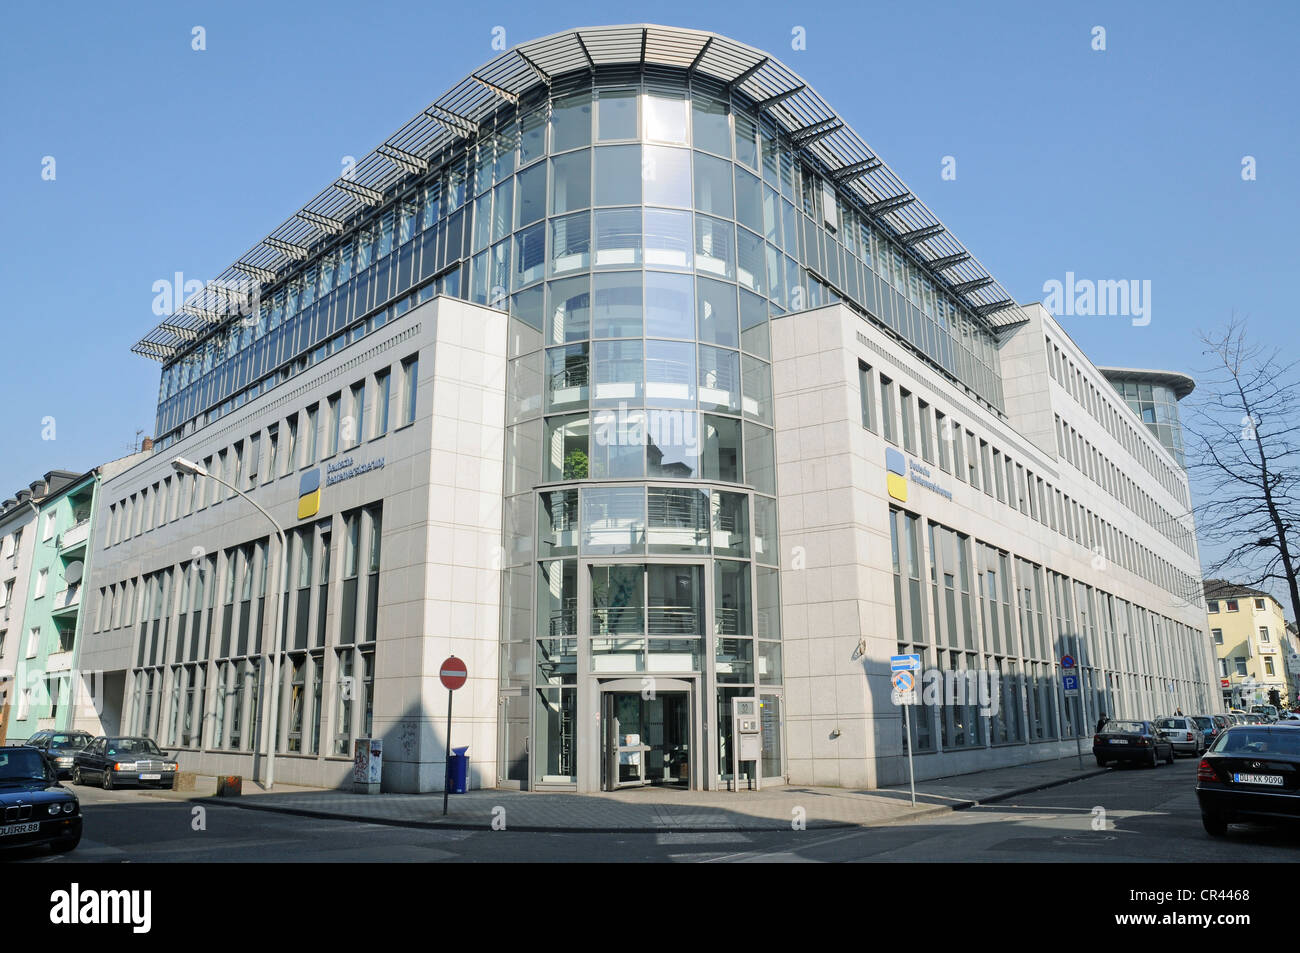 German pension insurance, Rhineland, Duisburg, Ruhrgebiet region, North Rhine-Westphalia, Germany, Europe Stock Photo